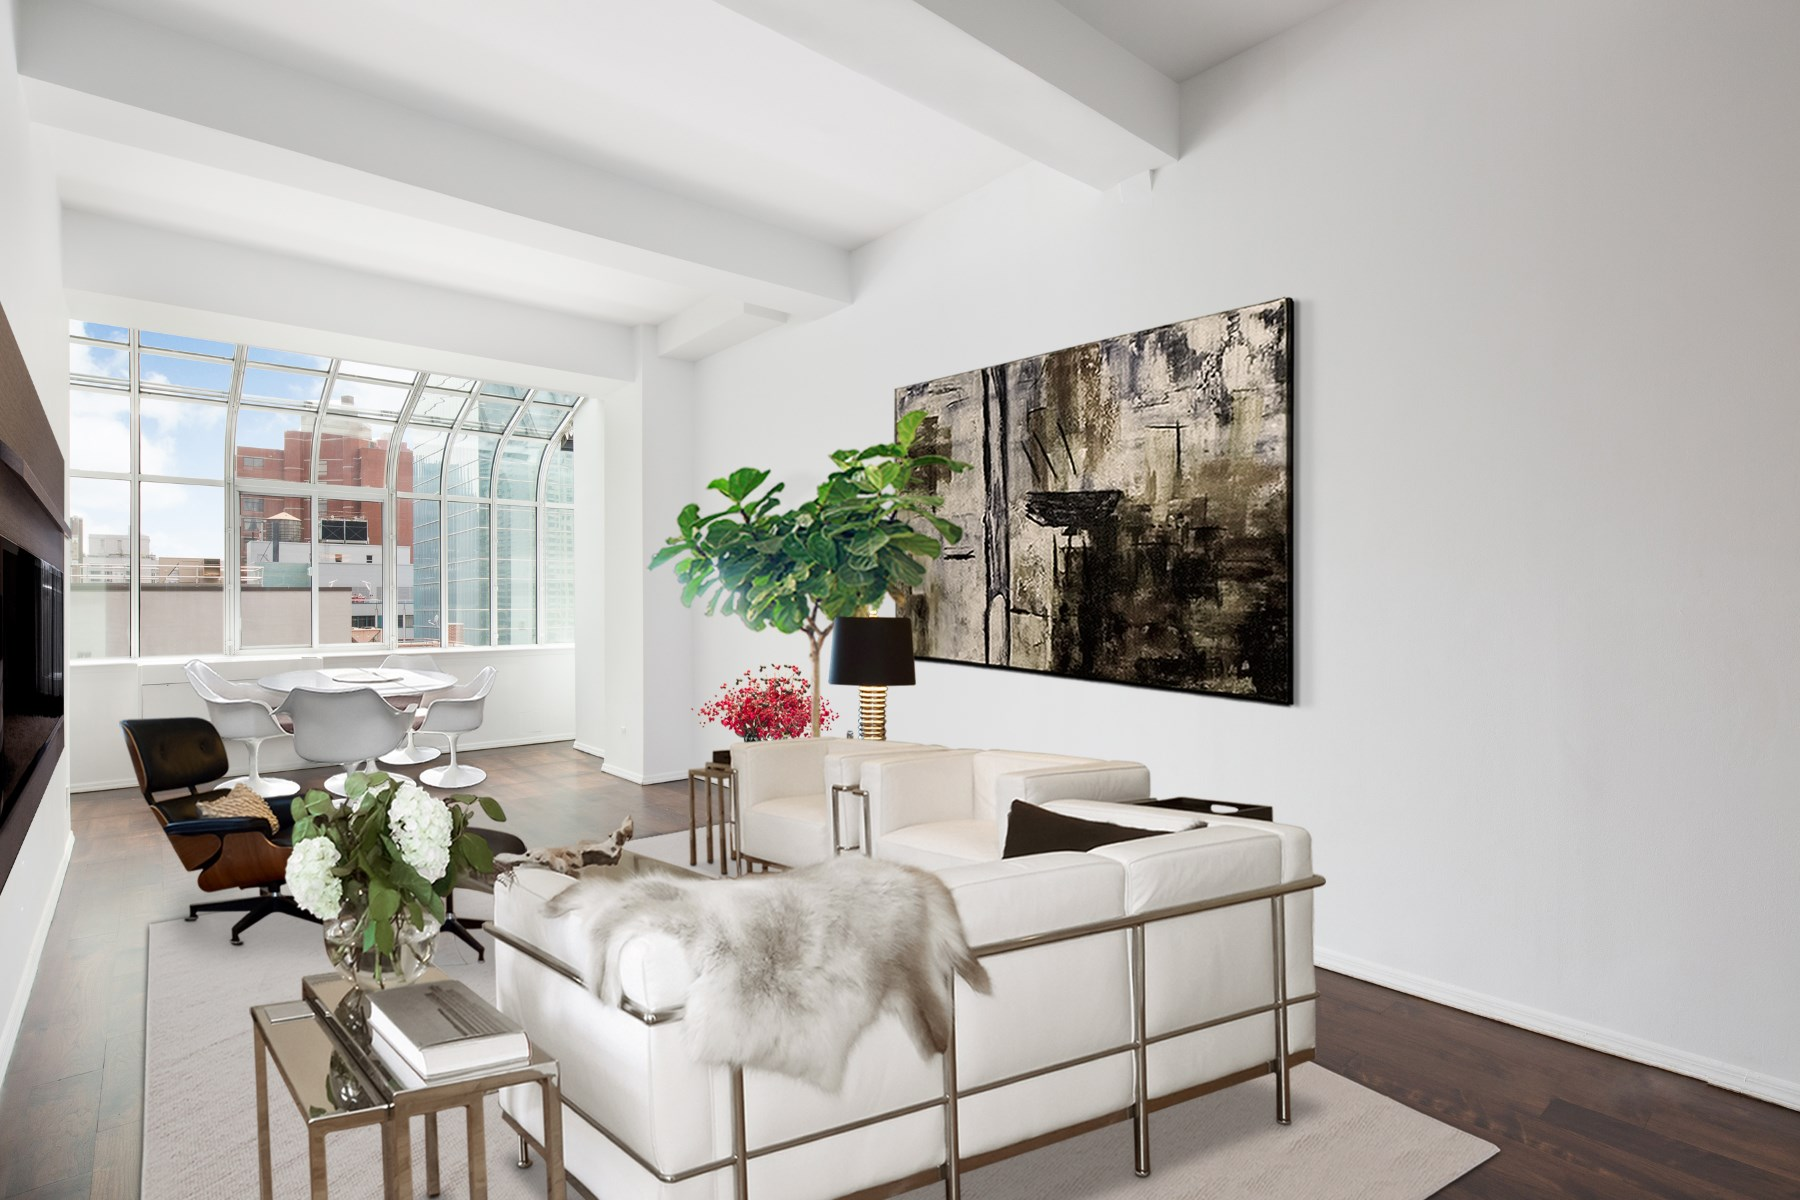 Co-op for Sale at 310 East 46th Street, Apt 19U Midtown East, New York, New York 10017 United States